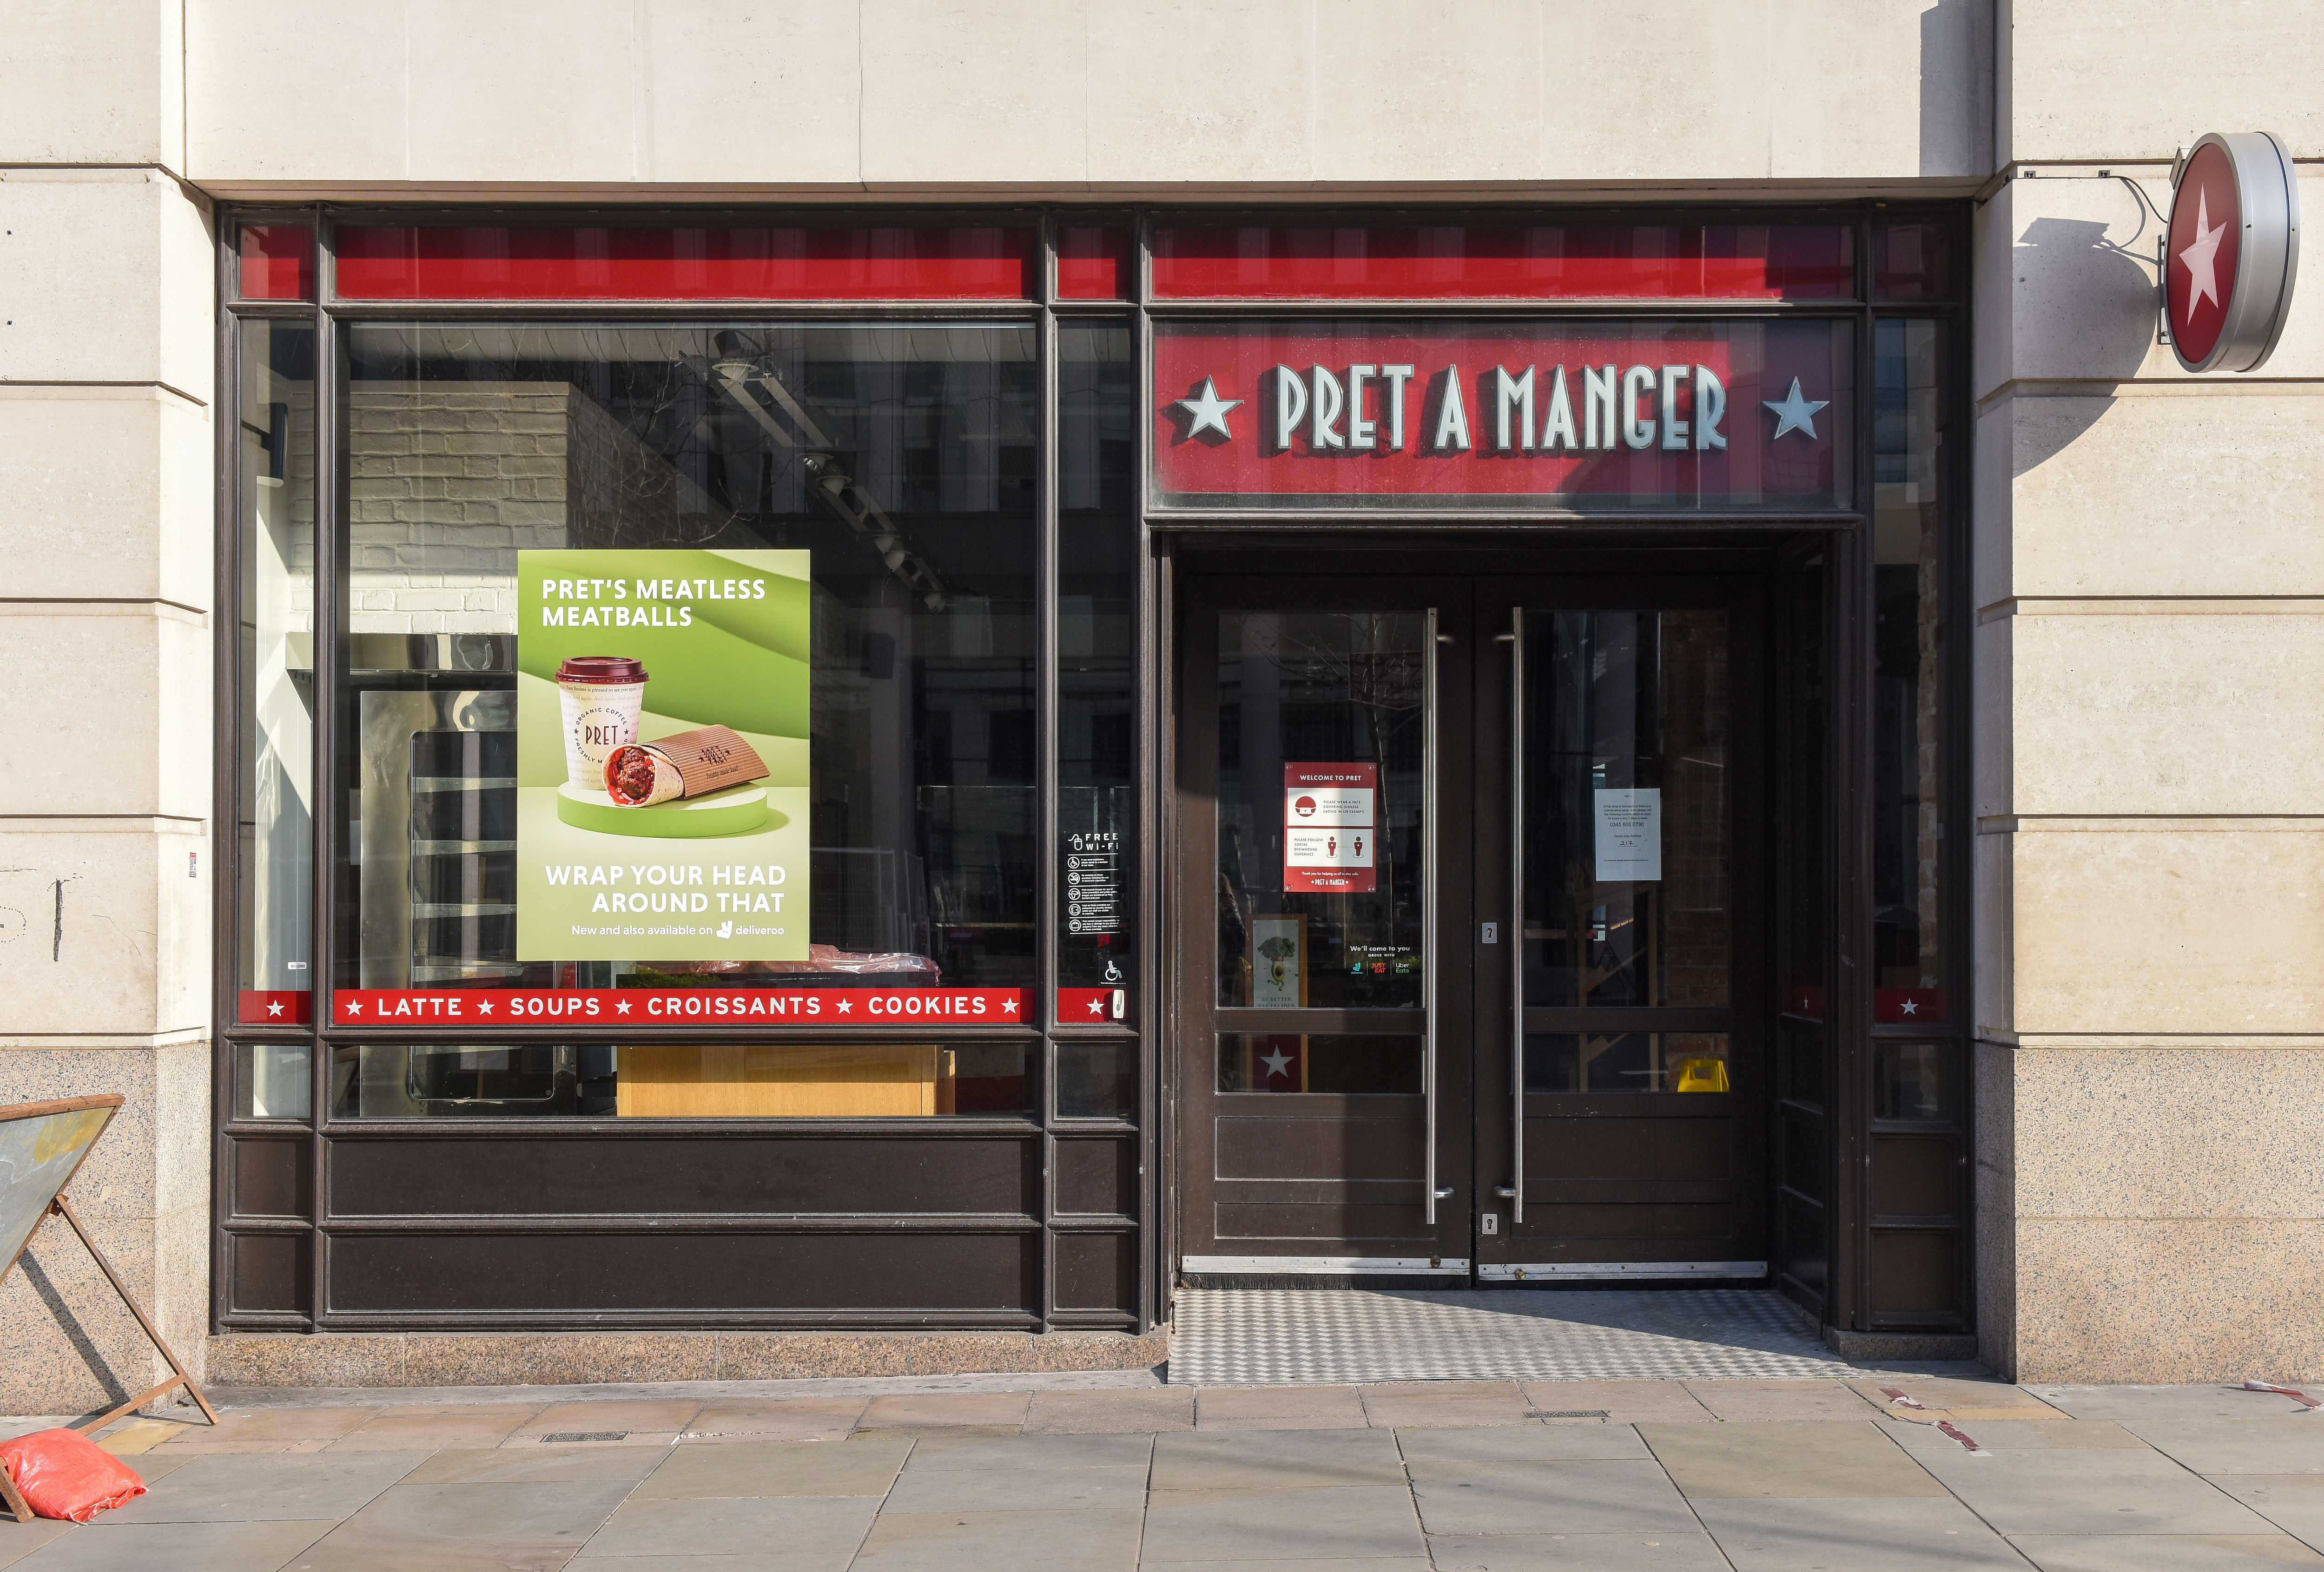 One of the Pret A Manger branch seen in central London